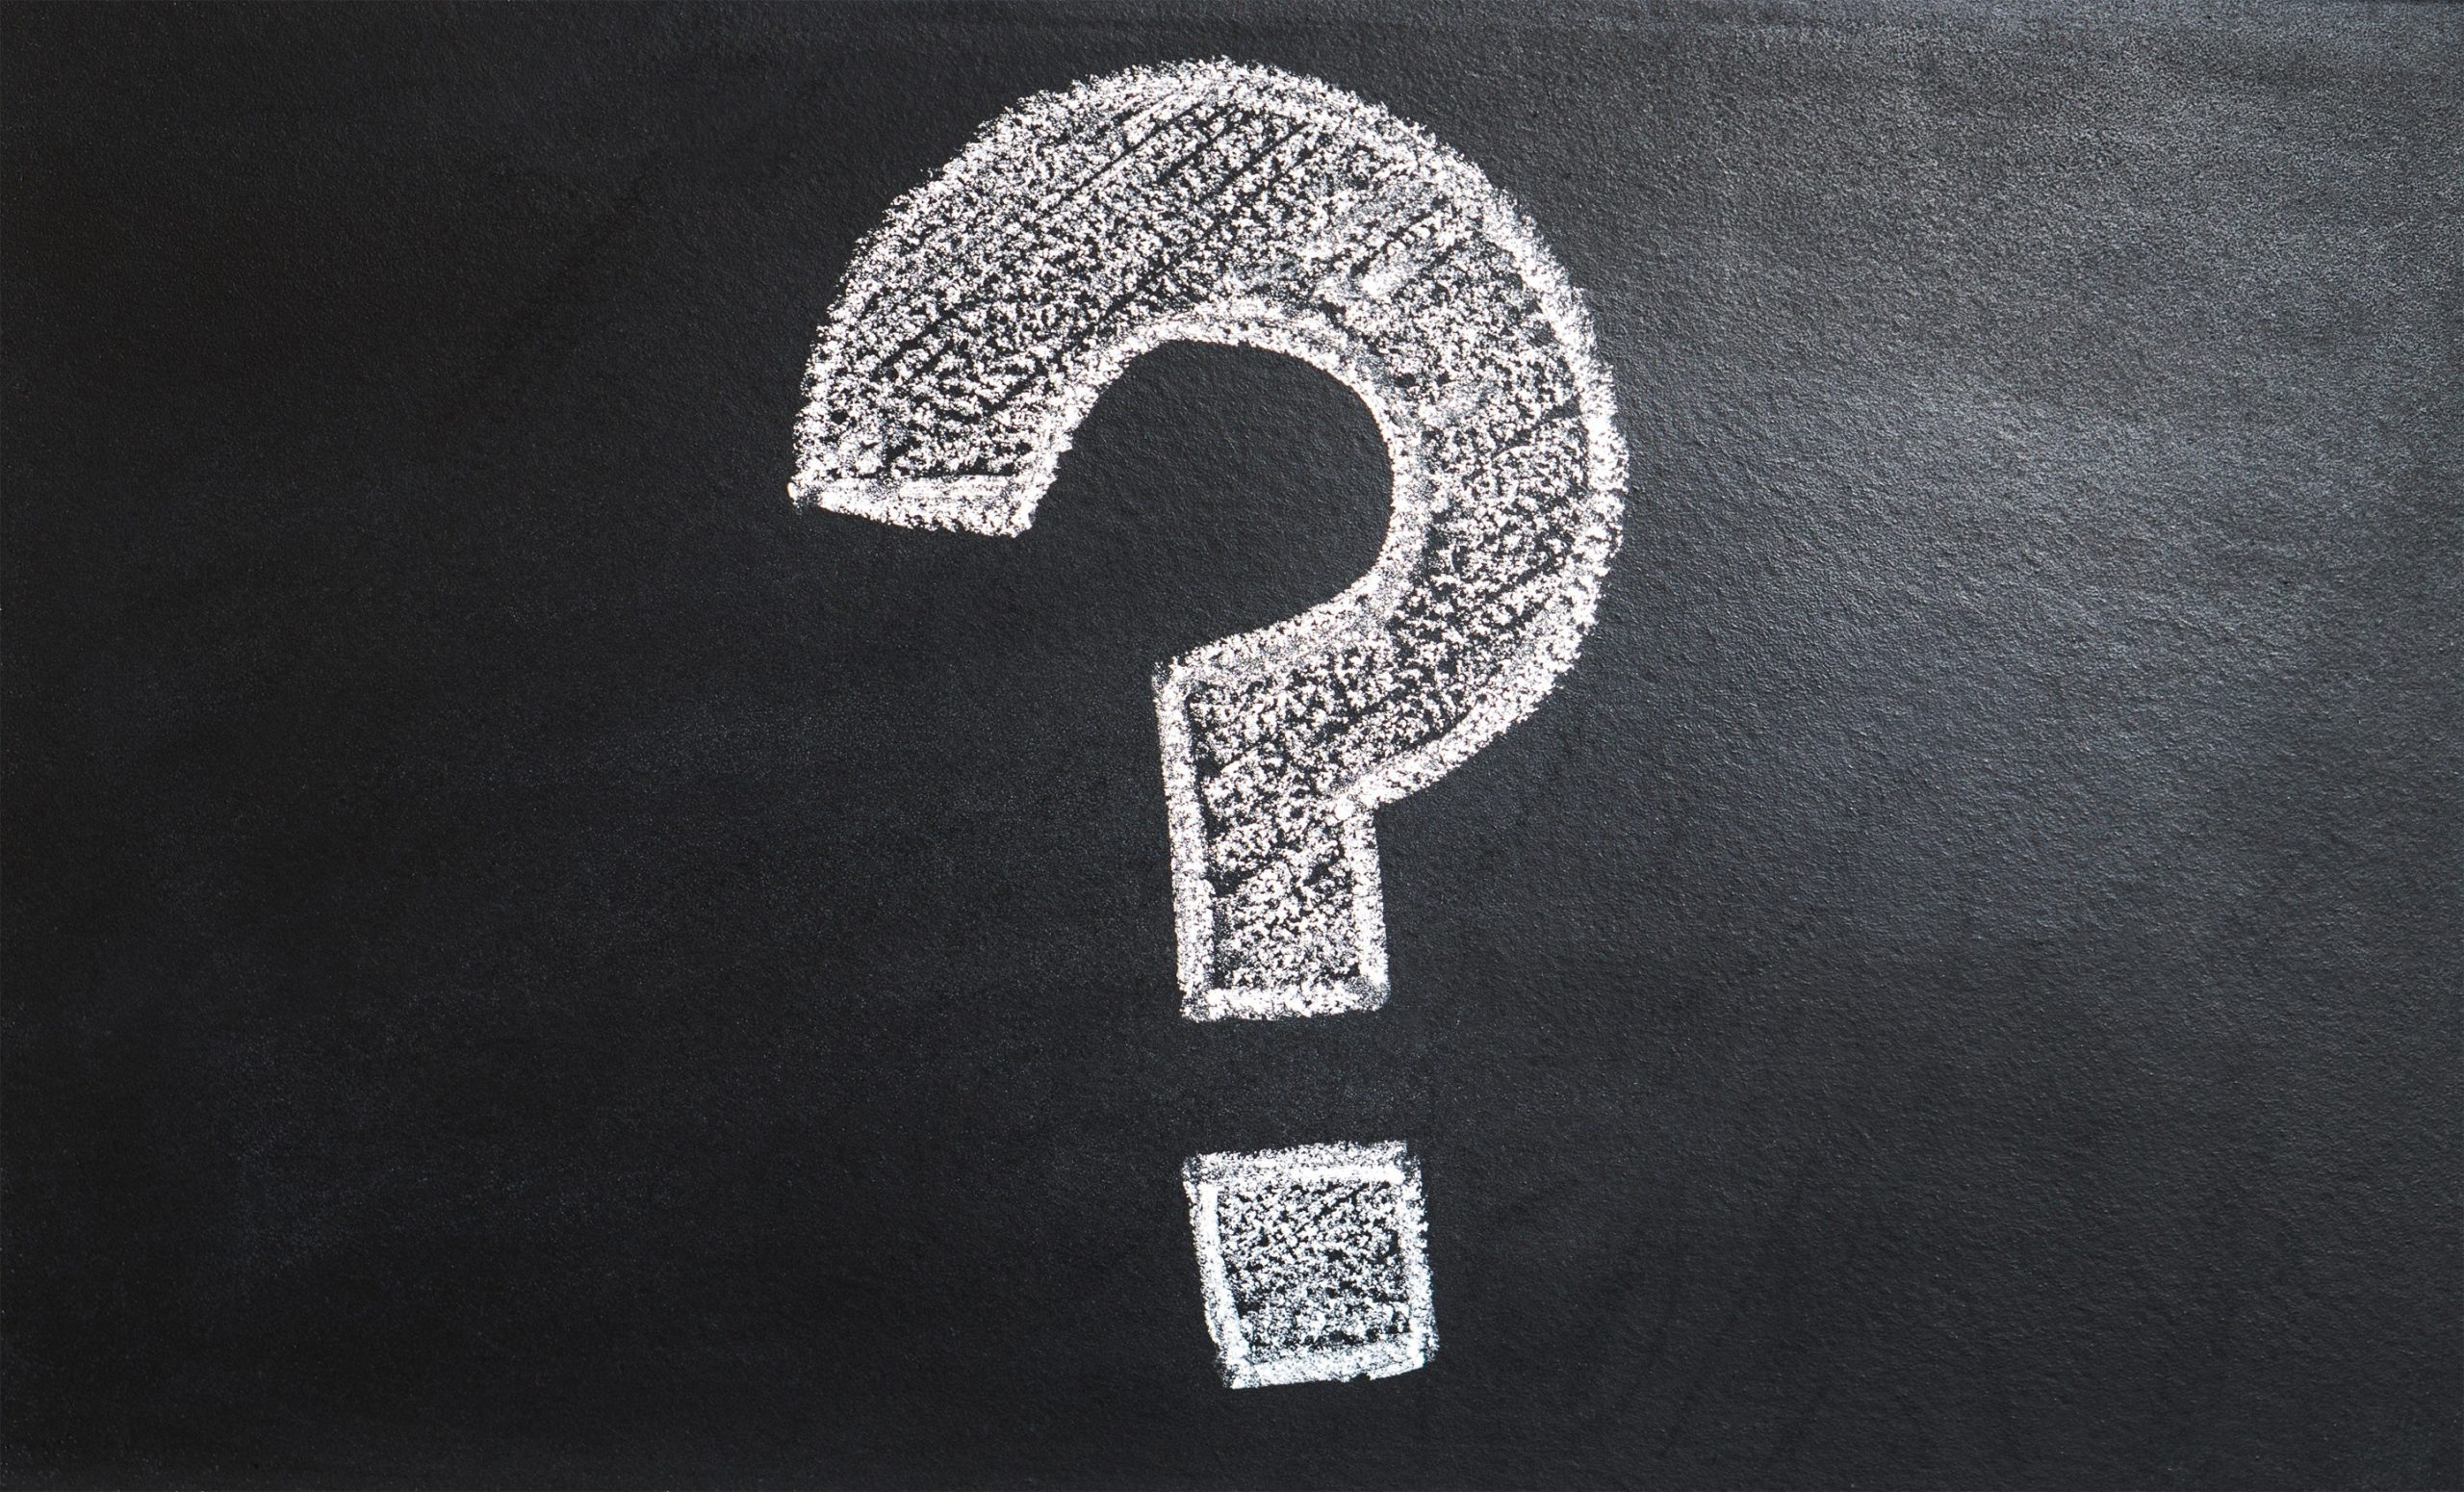 Image of a question mark on a chalkboard